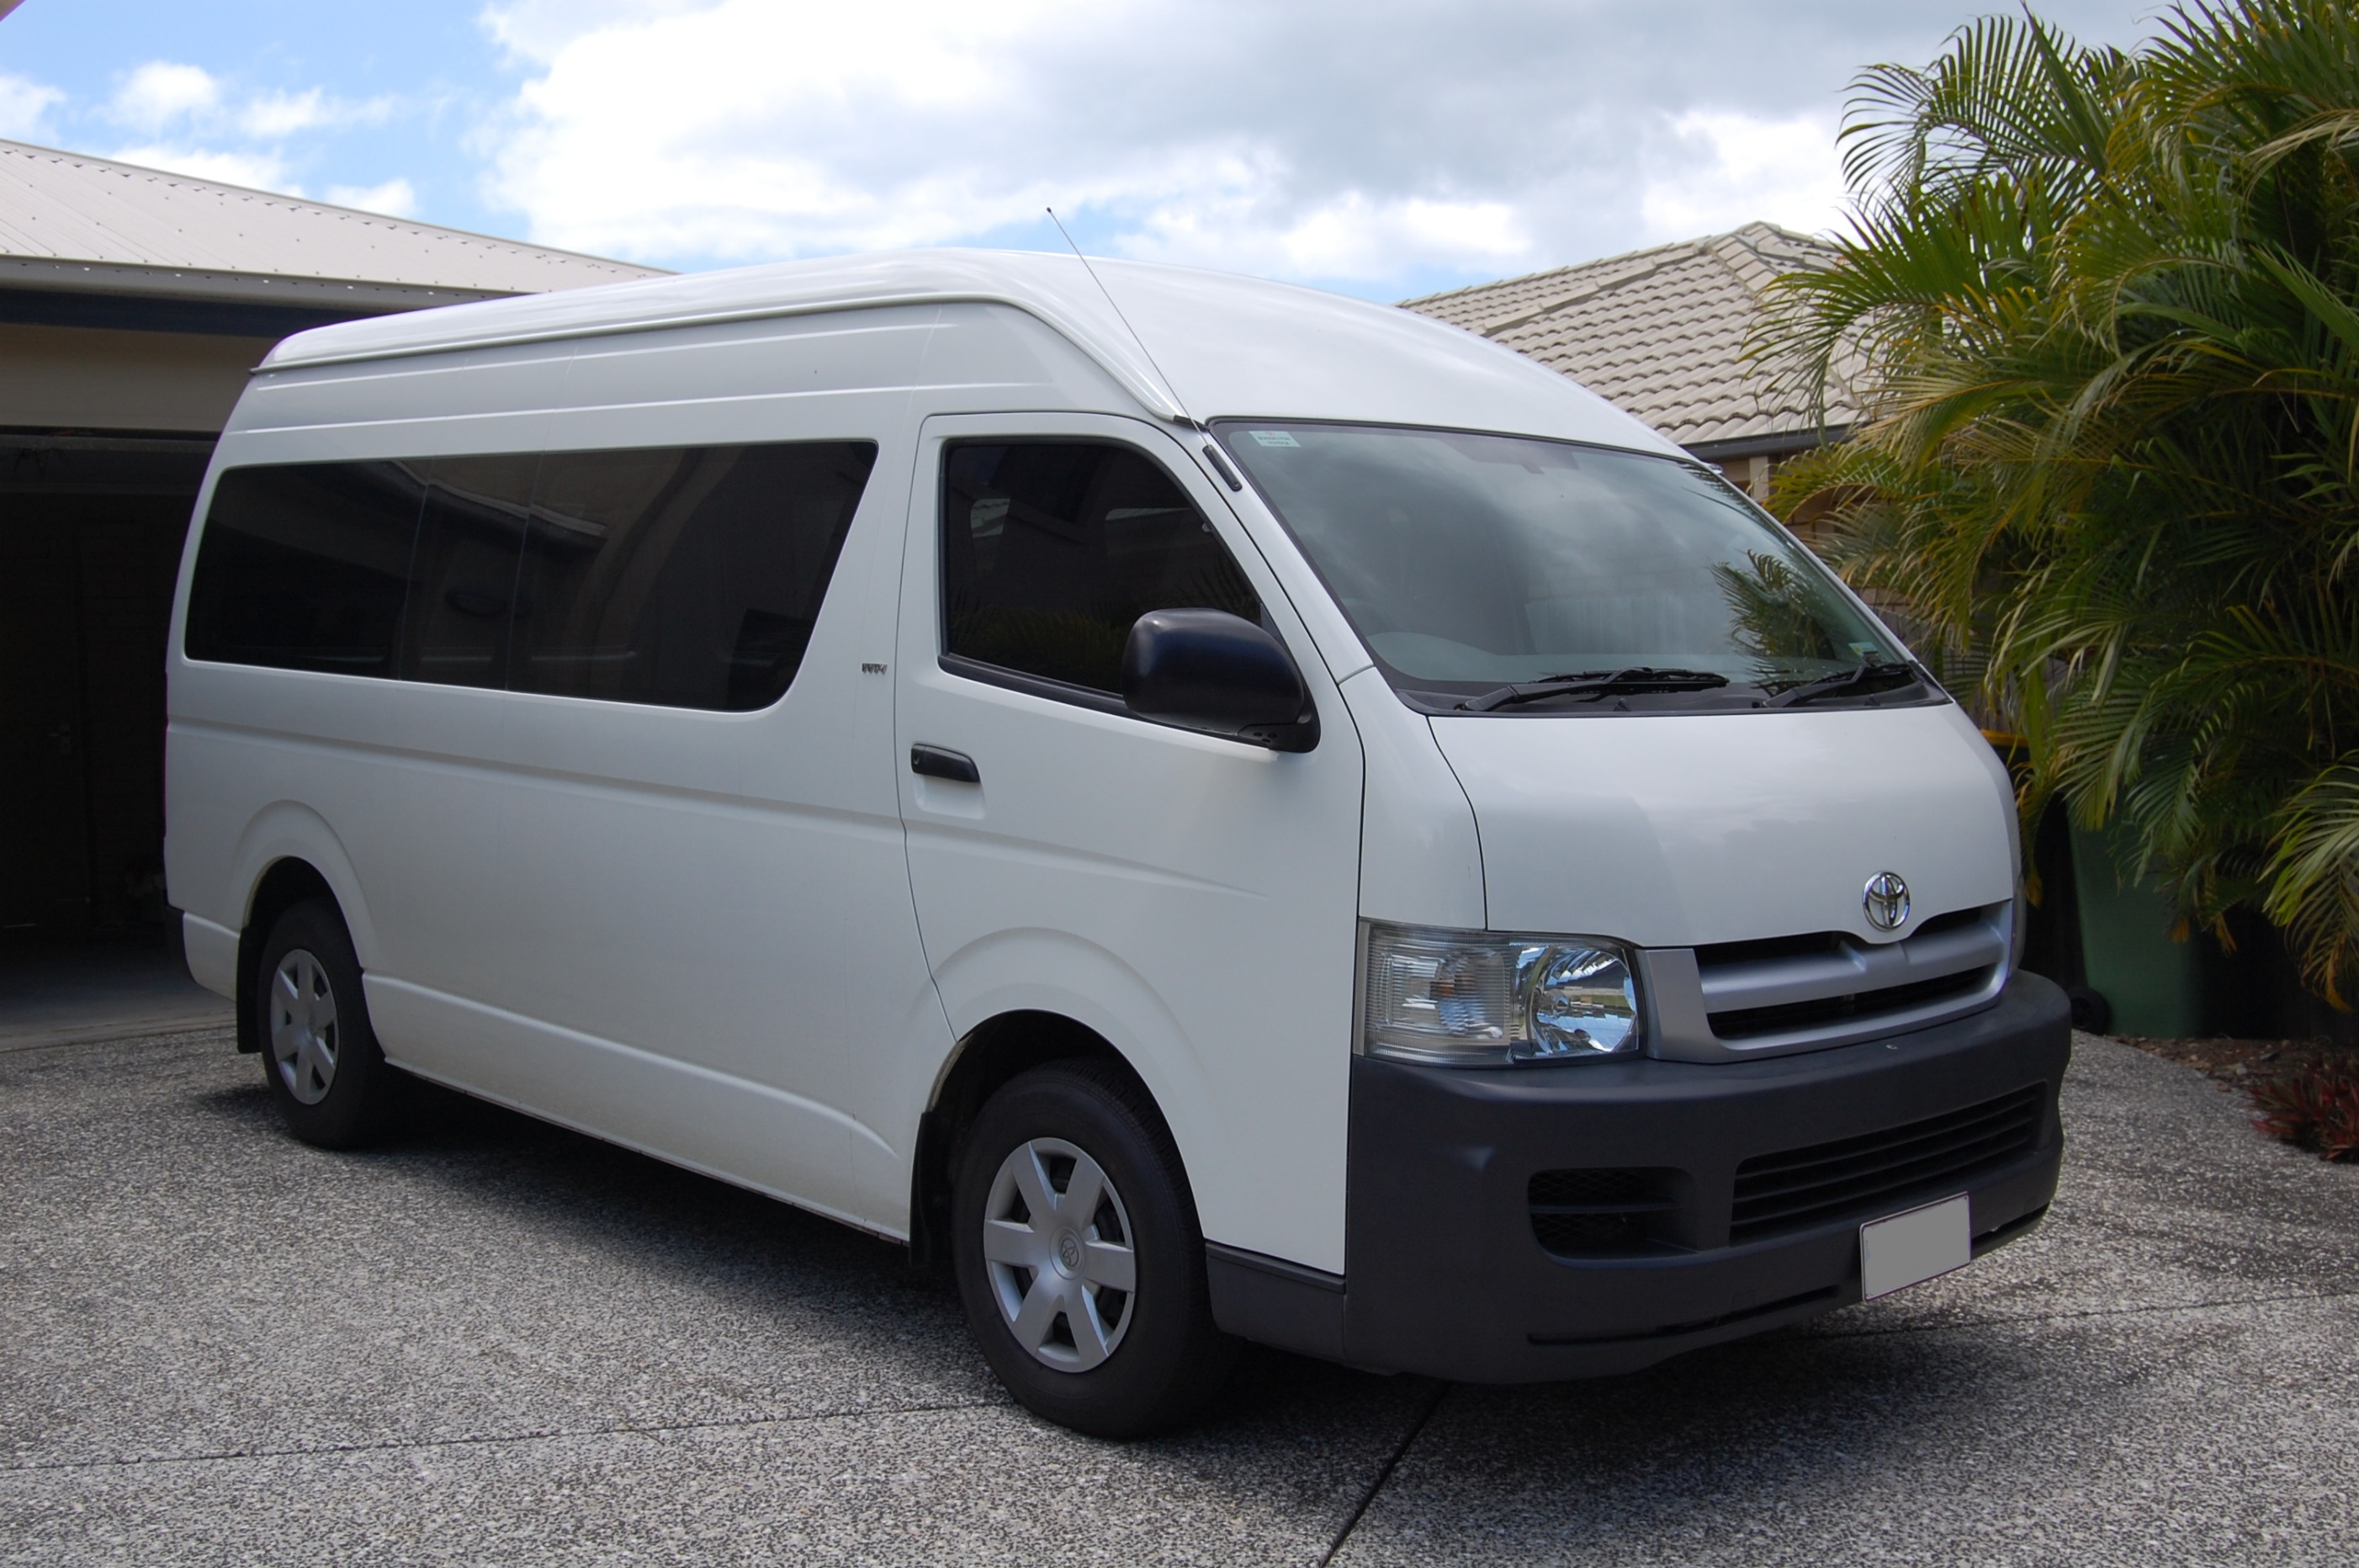 Toyota Hiace Commuter | The Campervan Converts